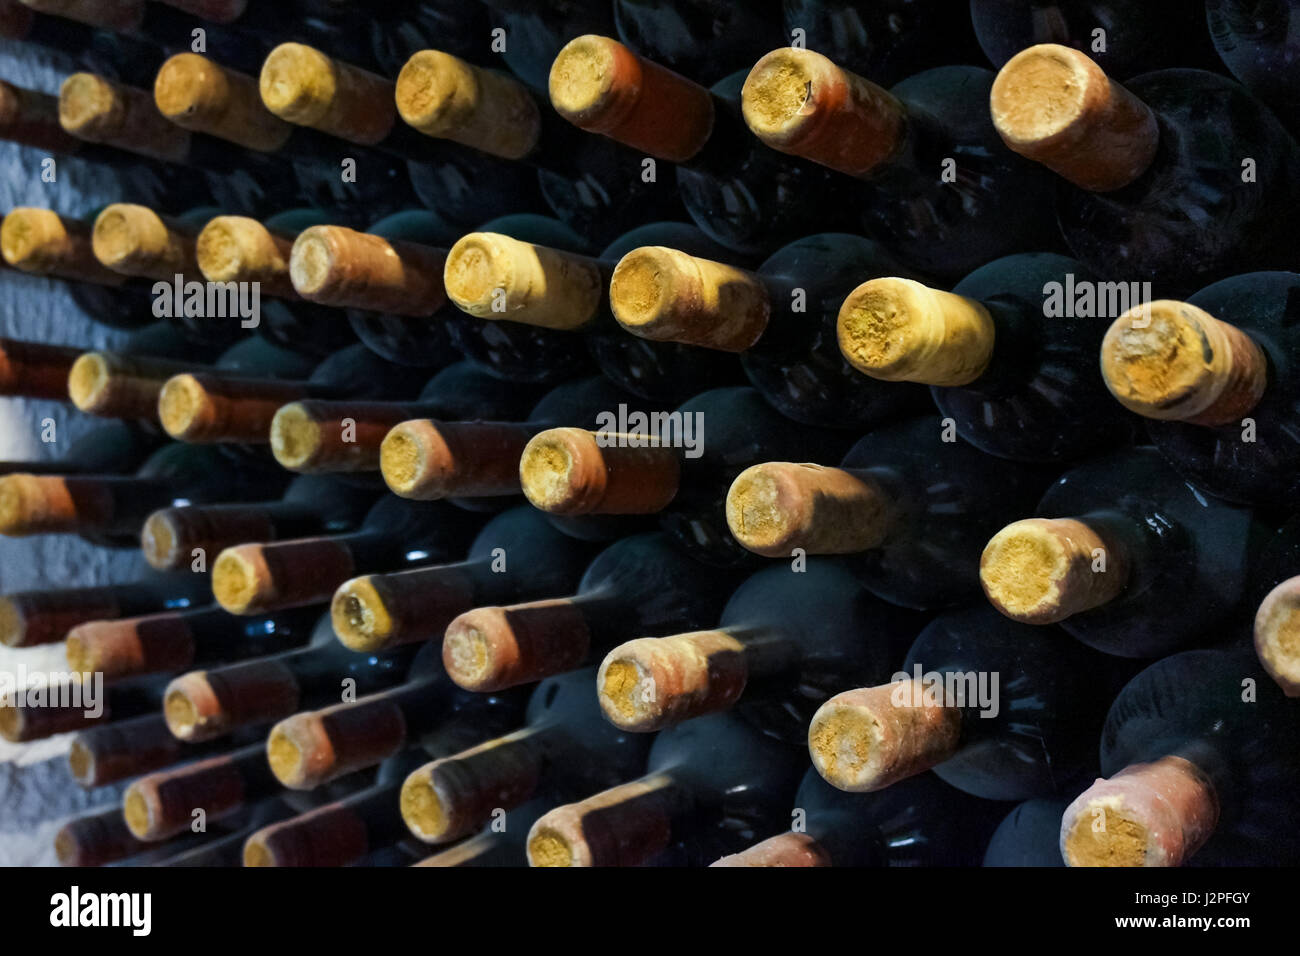 an overview of the atmosphere in a wine cellar Business overview welcome to the cellar, buntingford sharing your journey through the world of wine.